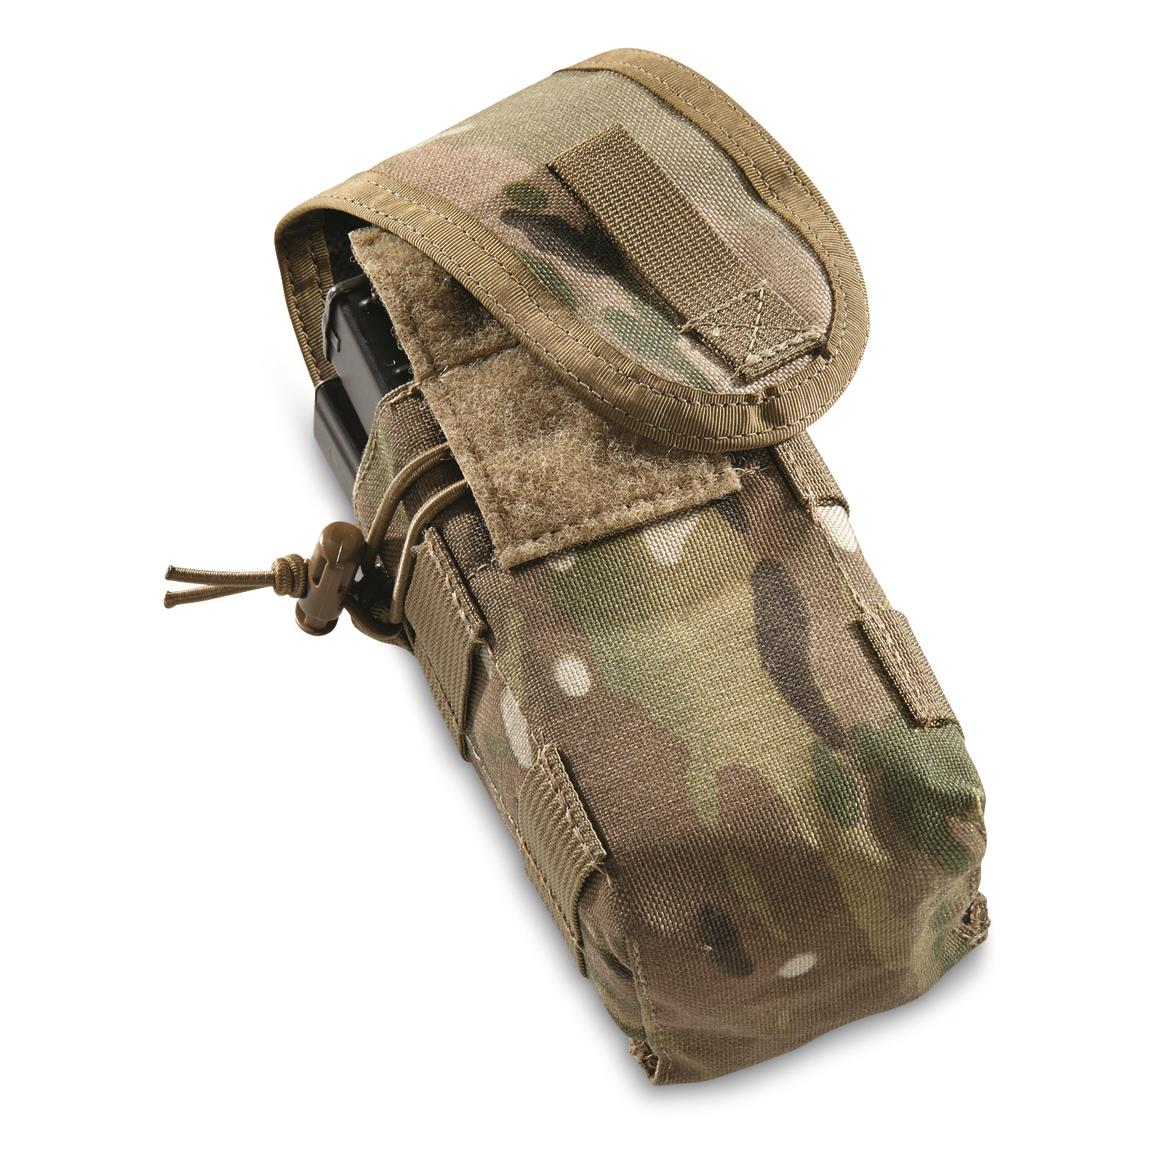 U.S. Military Surplus Stacked 3 Mag Pouch, New